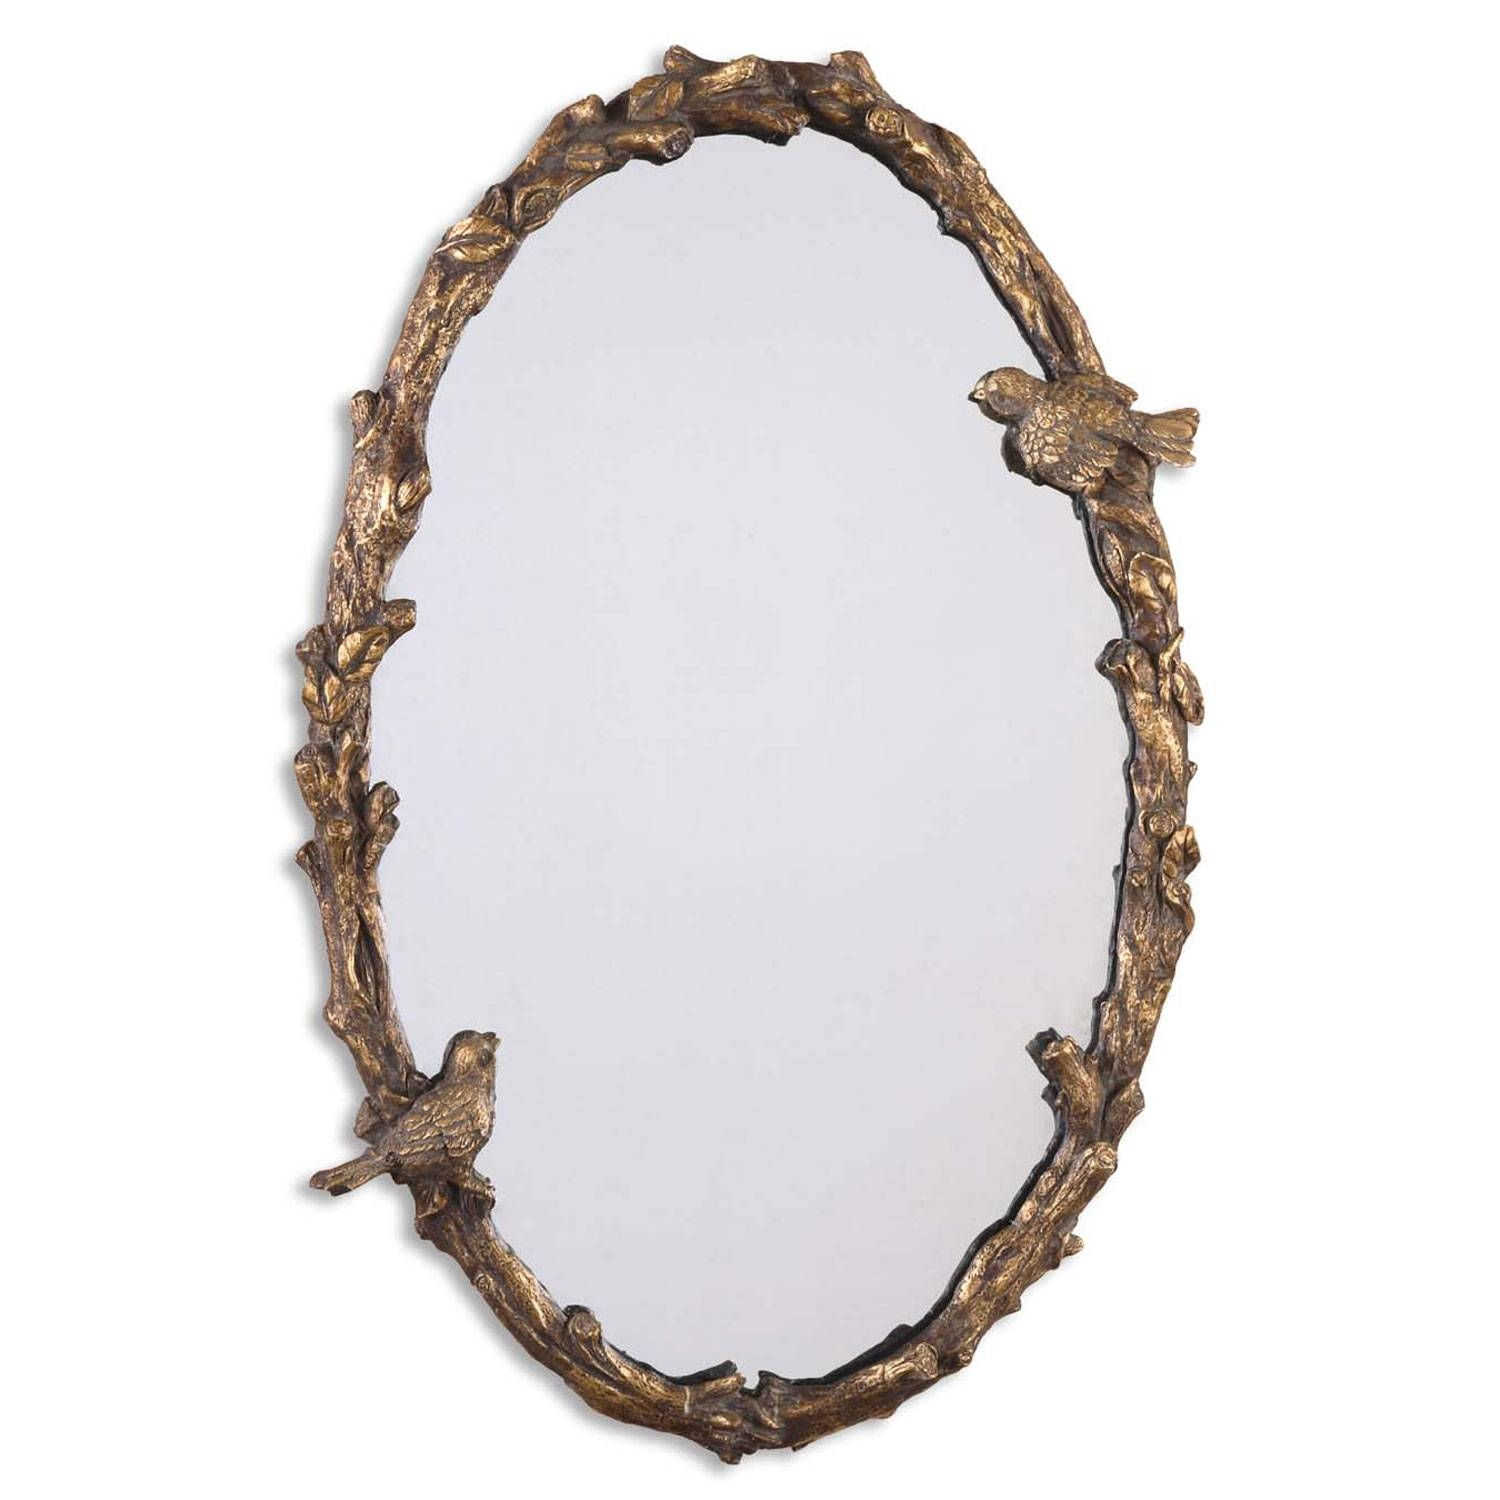 Triple Oval Gold Mirror Including Uttermost, Imax, Arteriors Home throughout Triple Oval Mirrors (Image 23 of 25)